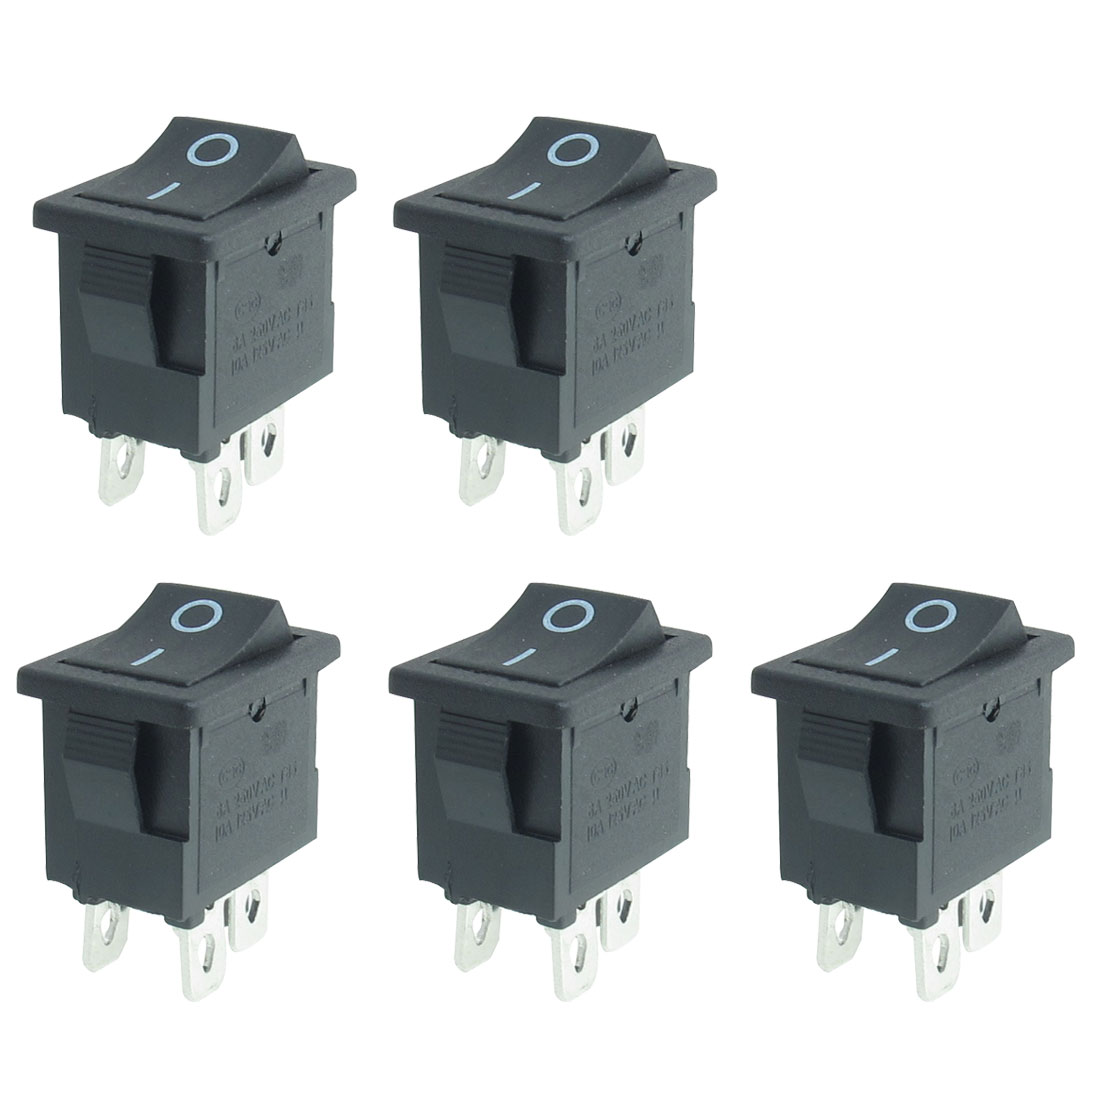 5 Pcs AC 250V/6A 125V/10A 4 Pins DPST On/Off Rocker Switch